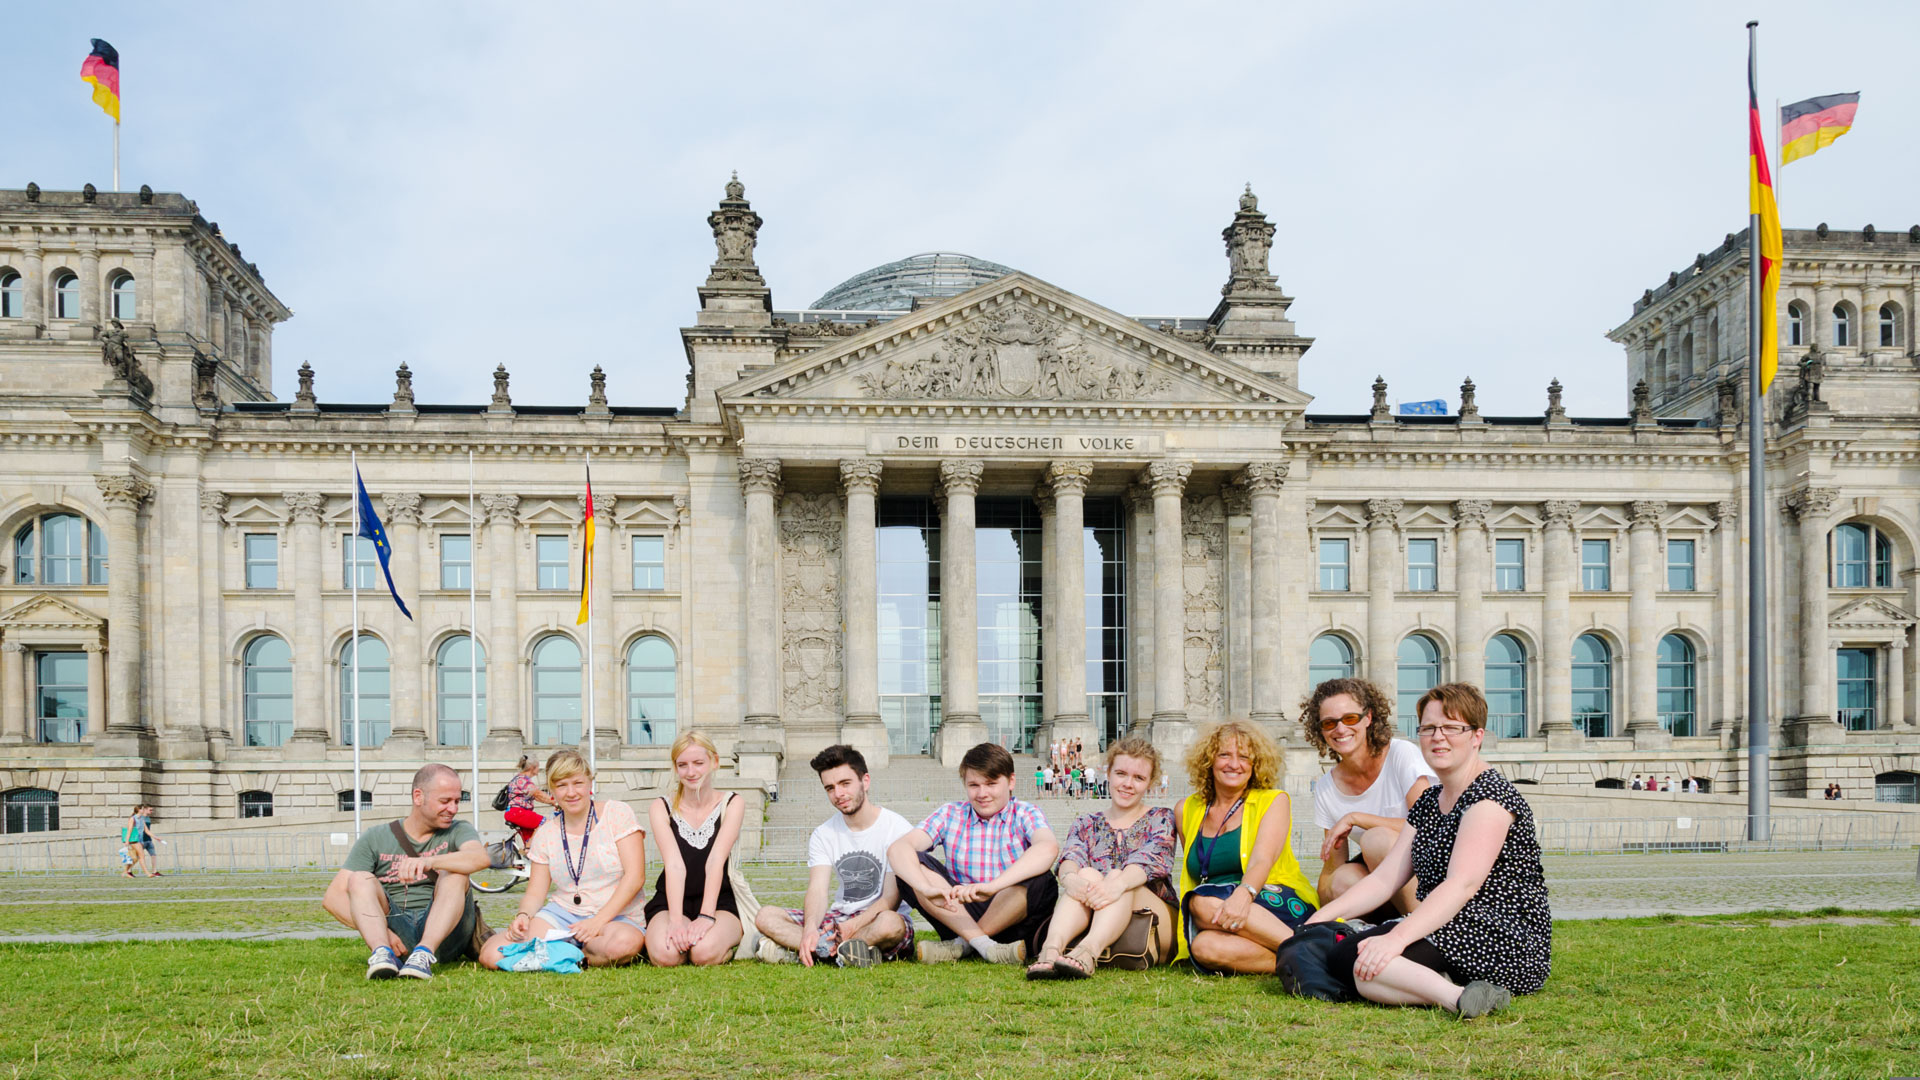 City walks, here to the Reichstag, are part of the after class activities